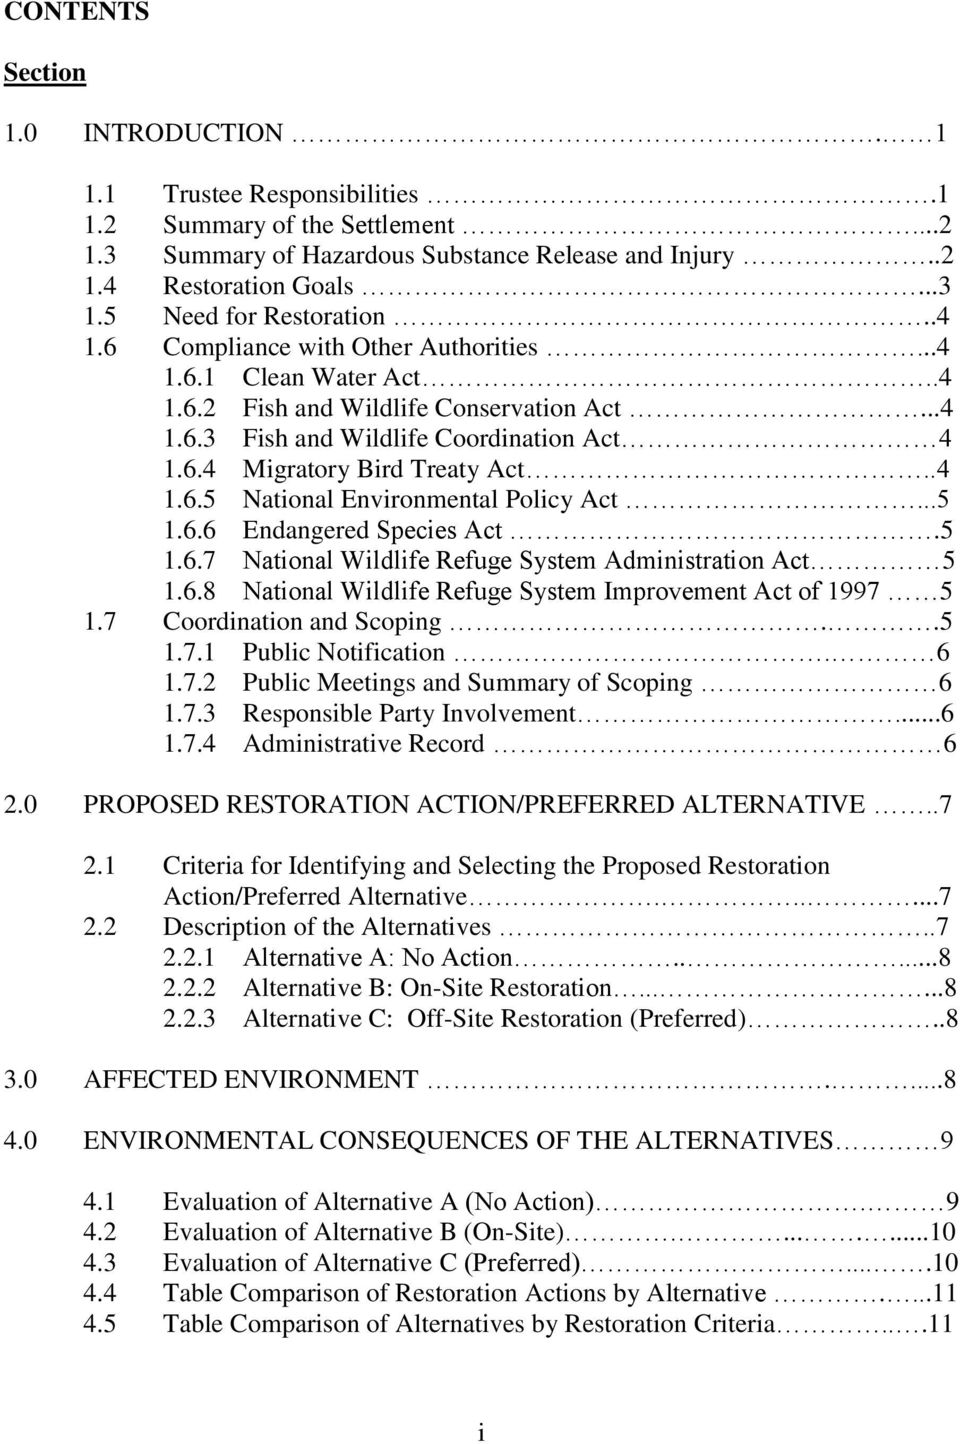 .4 1.6.5 National Environmental Policy Act...5 1.6.6 Endangered Species Act.5 1.6.7 National Wildlife Refuge System Administration Act 5 1.6.8 National Wildlife Refuge System Improvement Act of 1997 5 1.